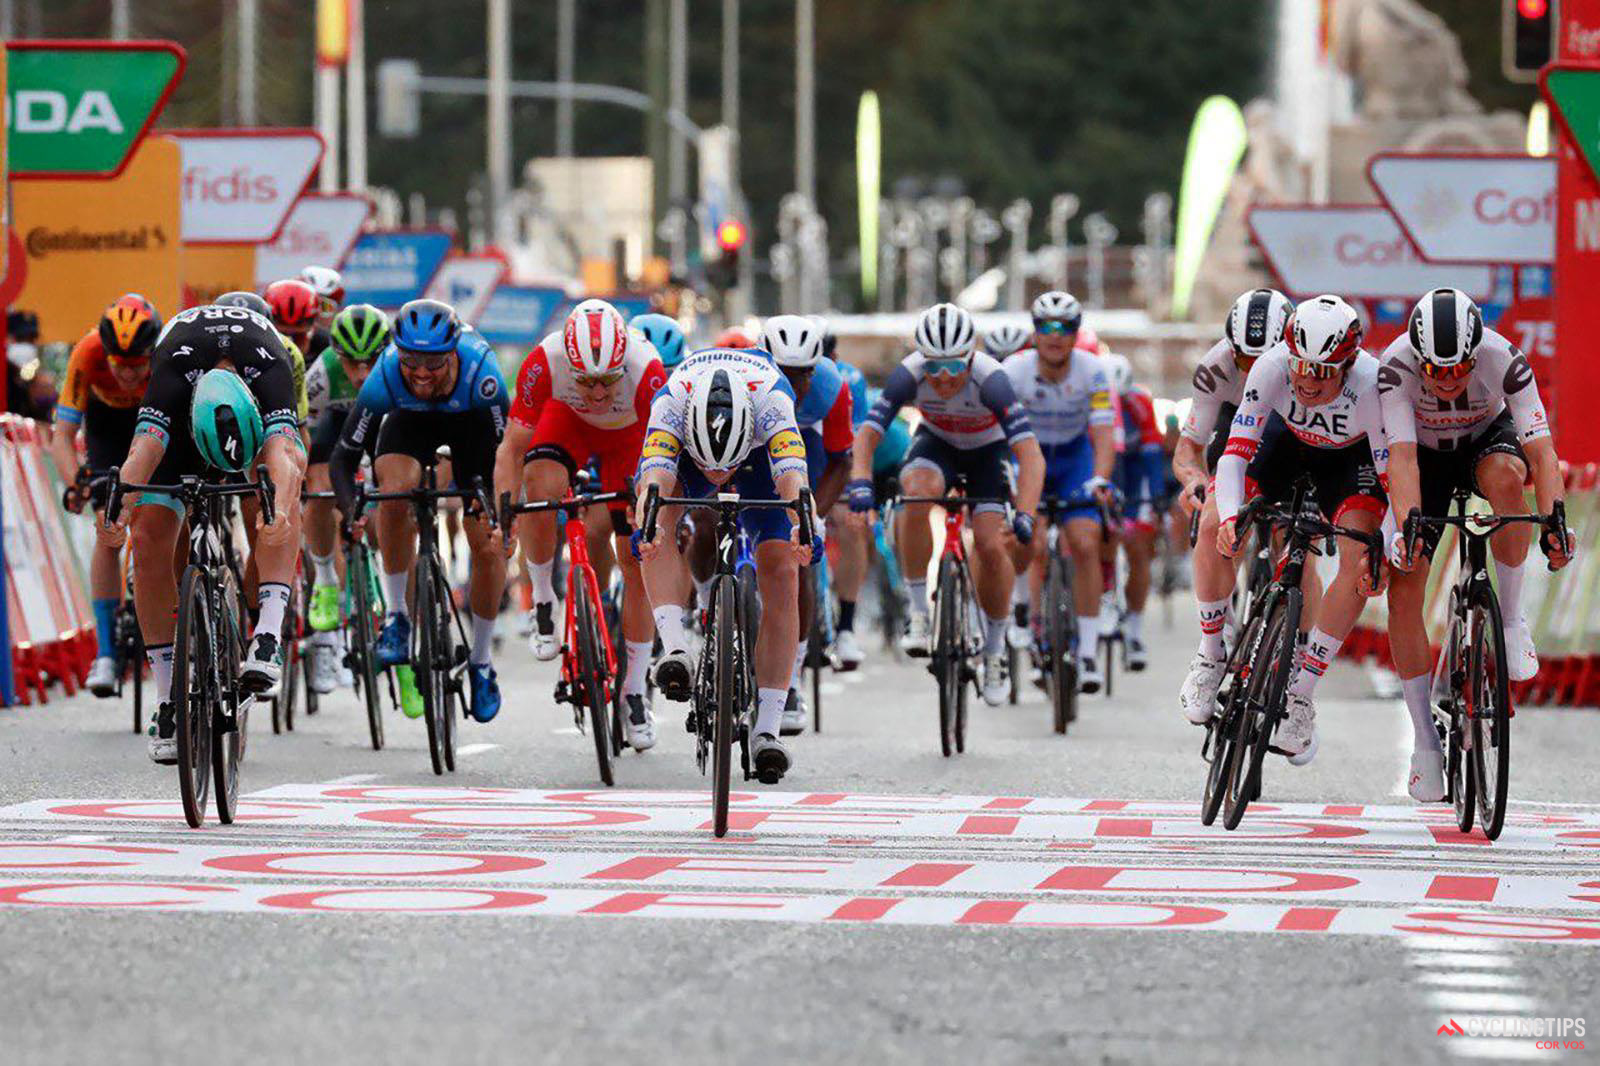 Pascal Ackermann wins final stage of La Vuelta: Daily News Digest